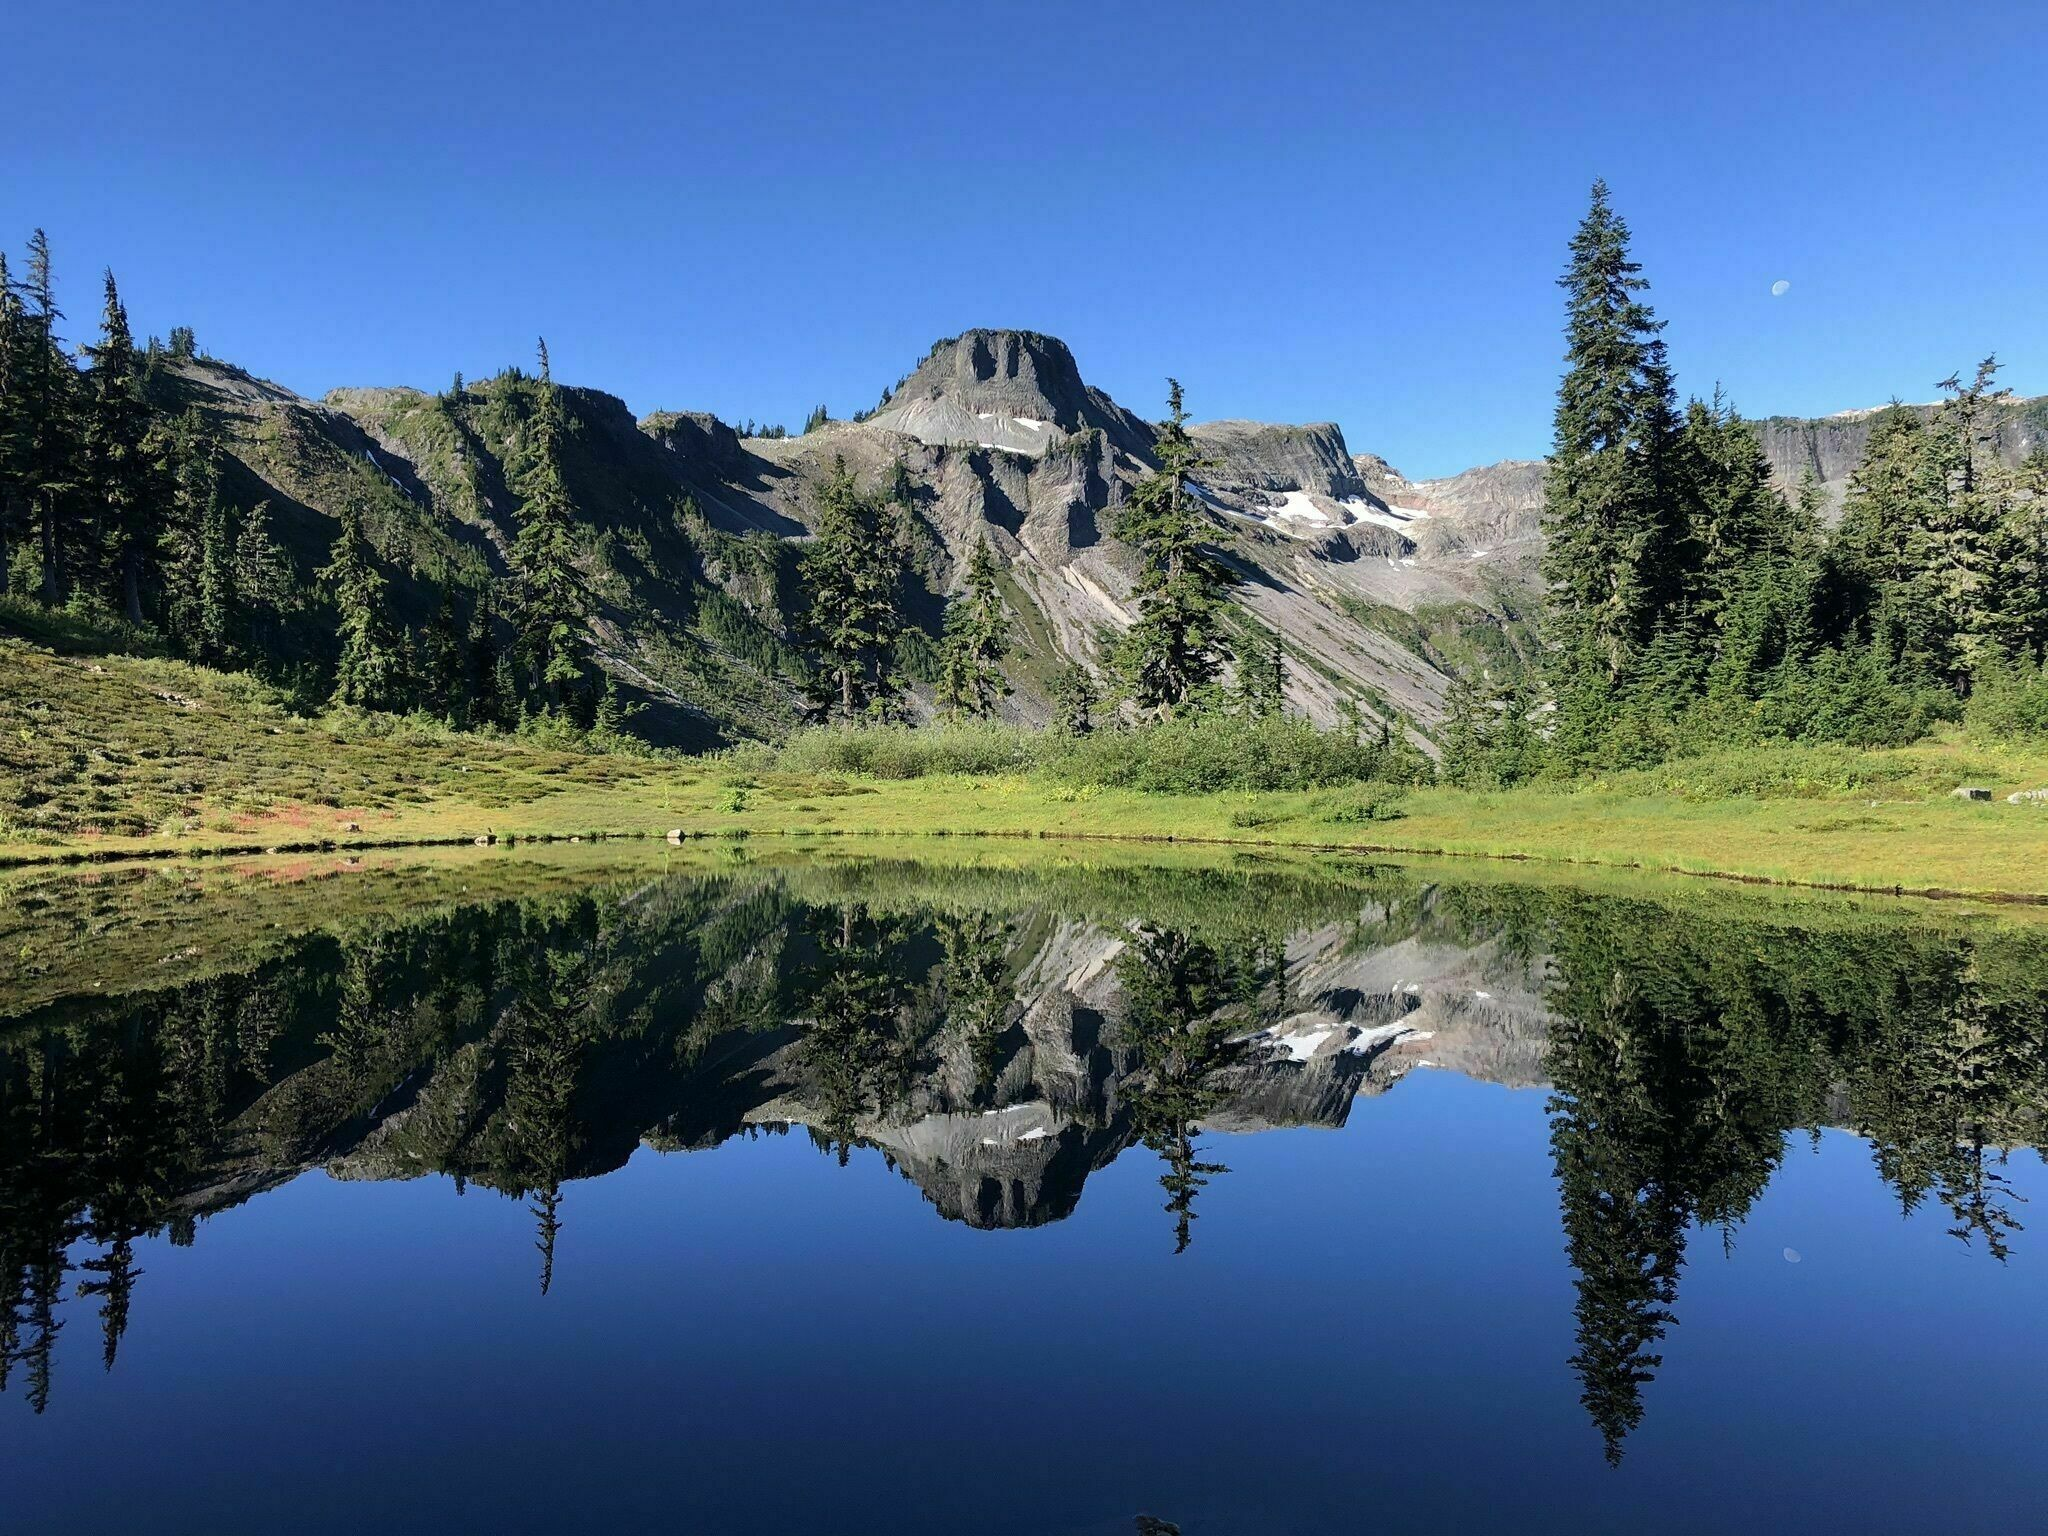 Featuring A Lake And Views Of Mt Baker, The Chain Lake Loop Trail Is One Of Washington's Most Rewarding Hikes